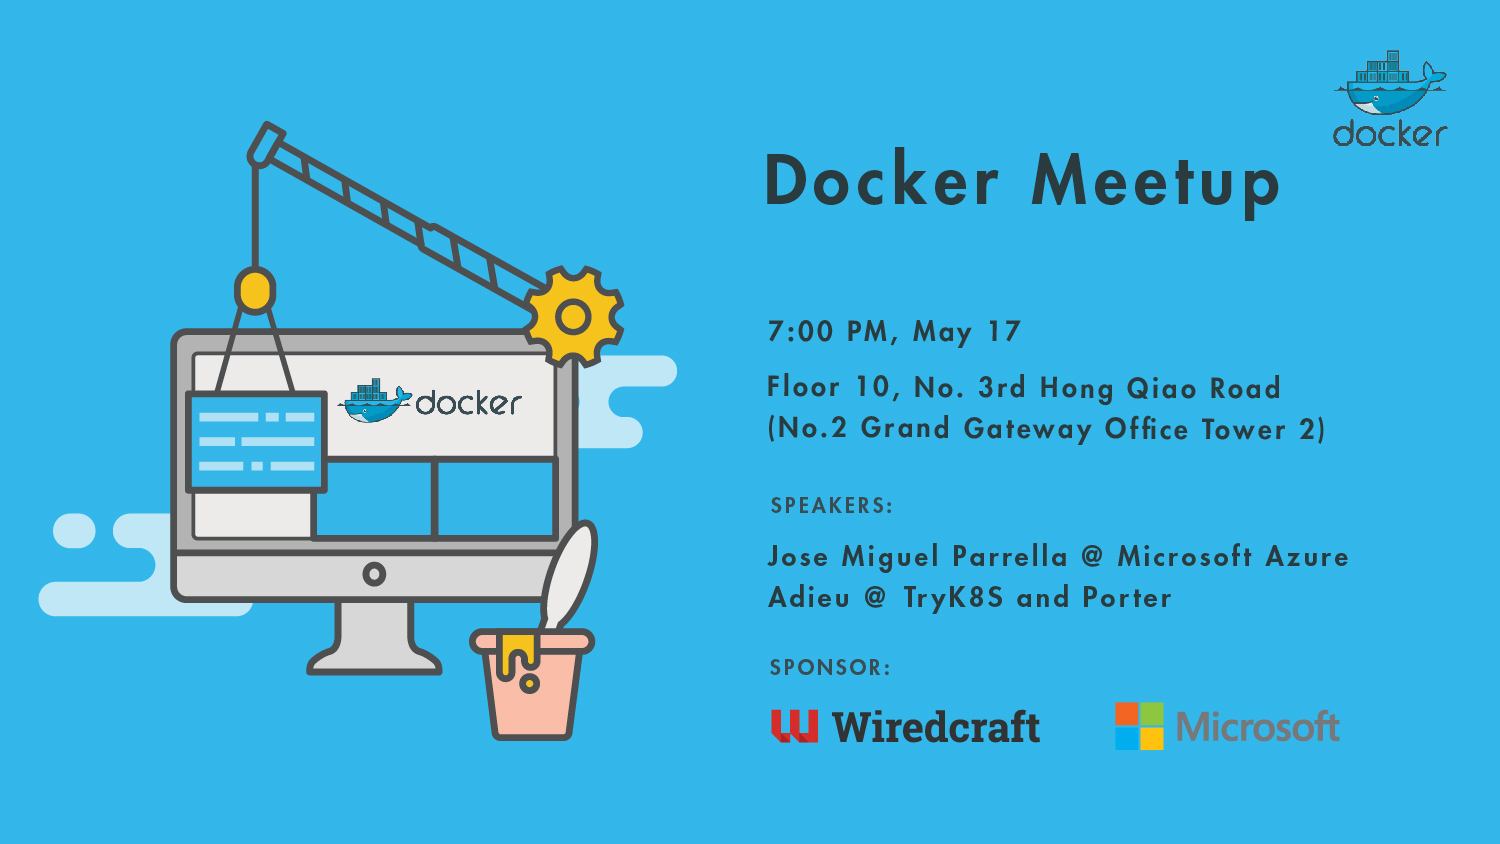 Come join Wiredcraft and Microsoft at the first ever Docker Meetup in Shanghai, May 17